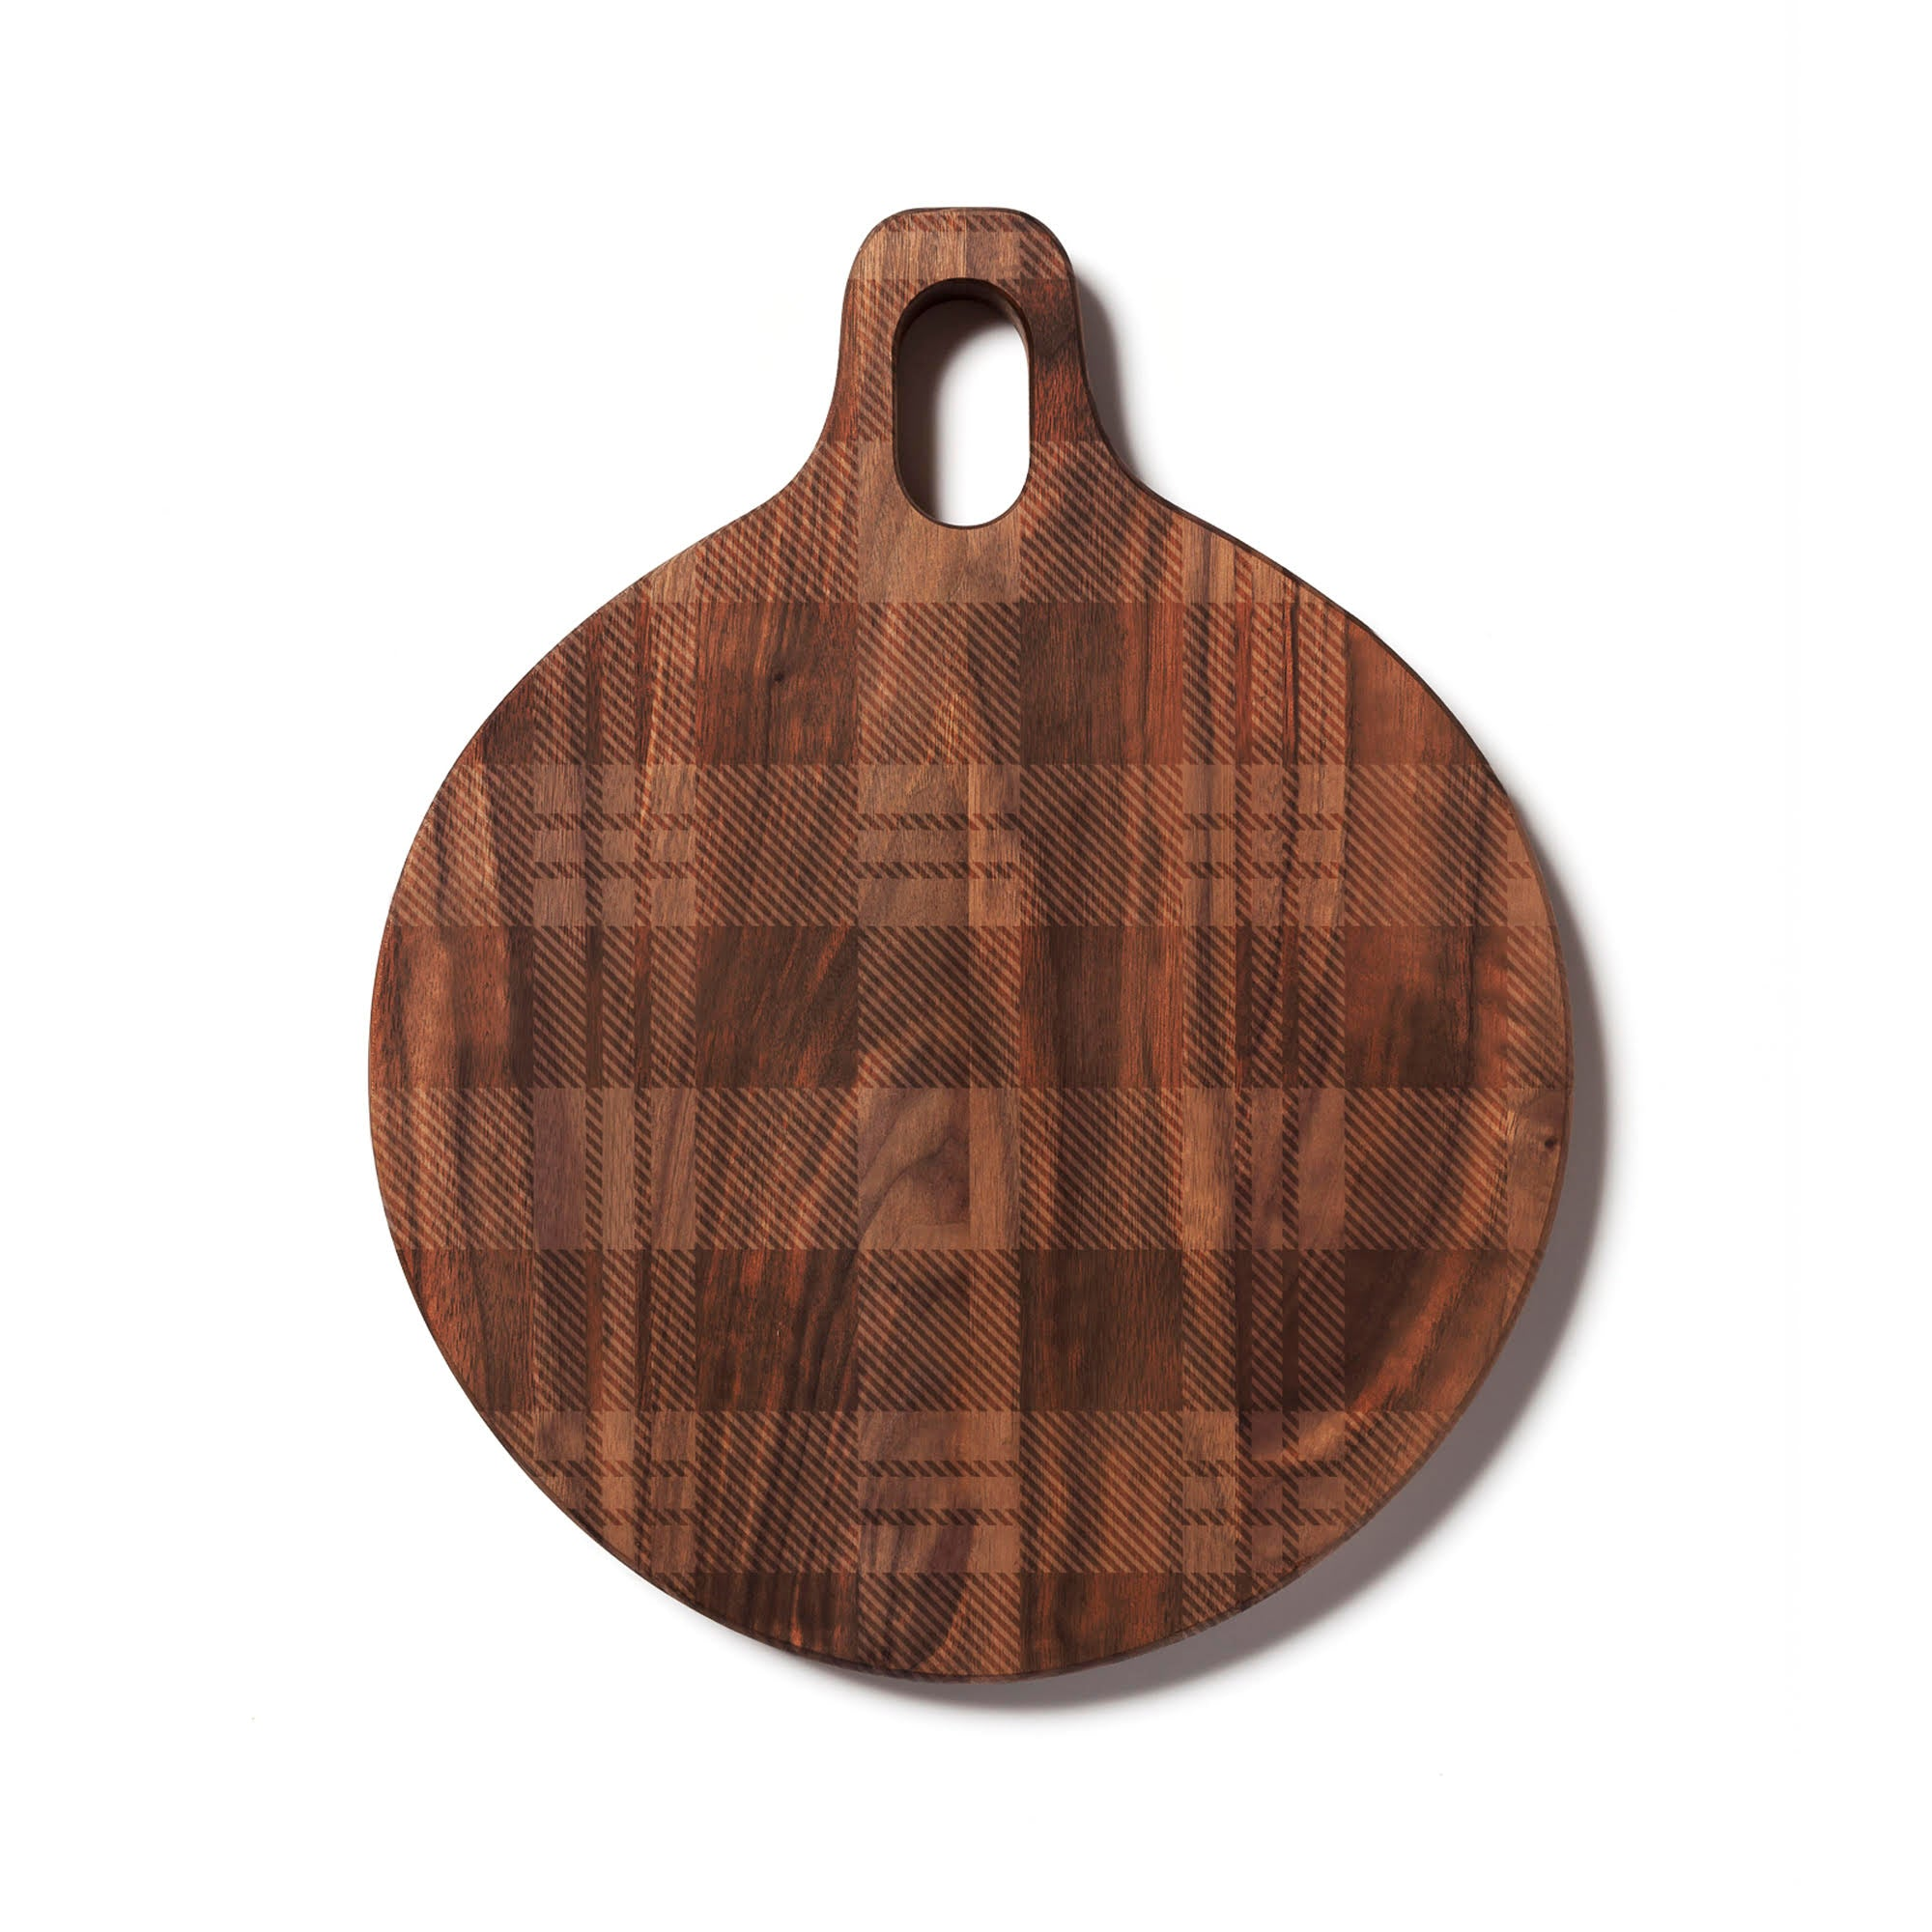 Engraved Plaid Walnut Cutting Board